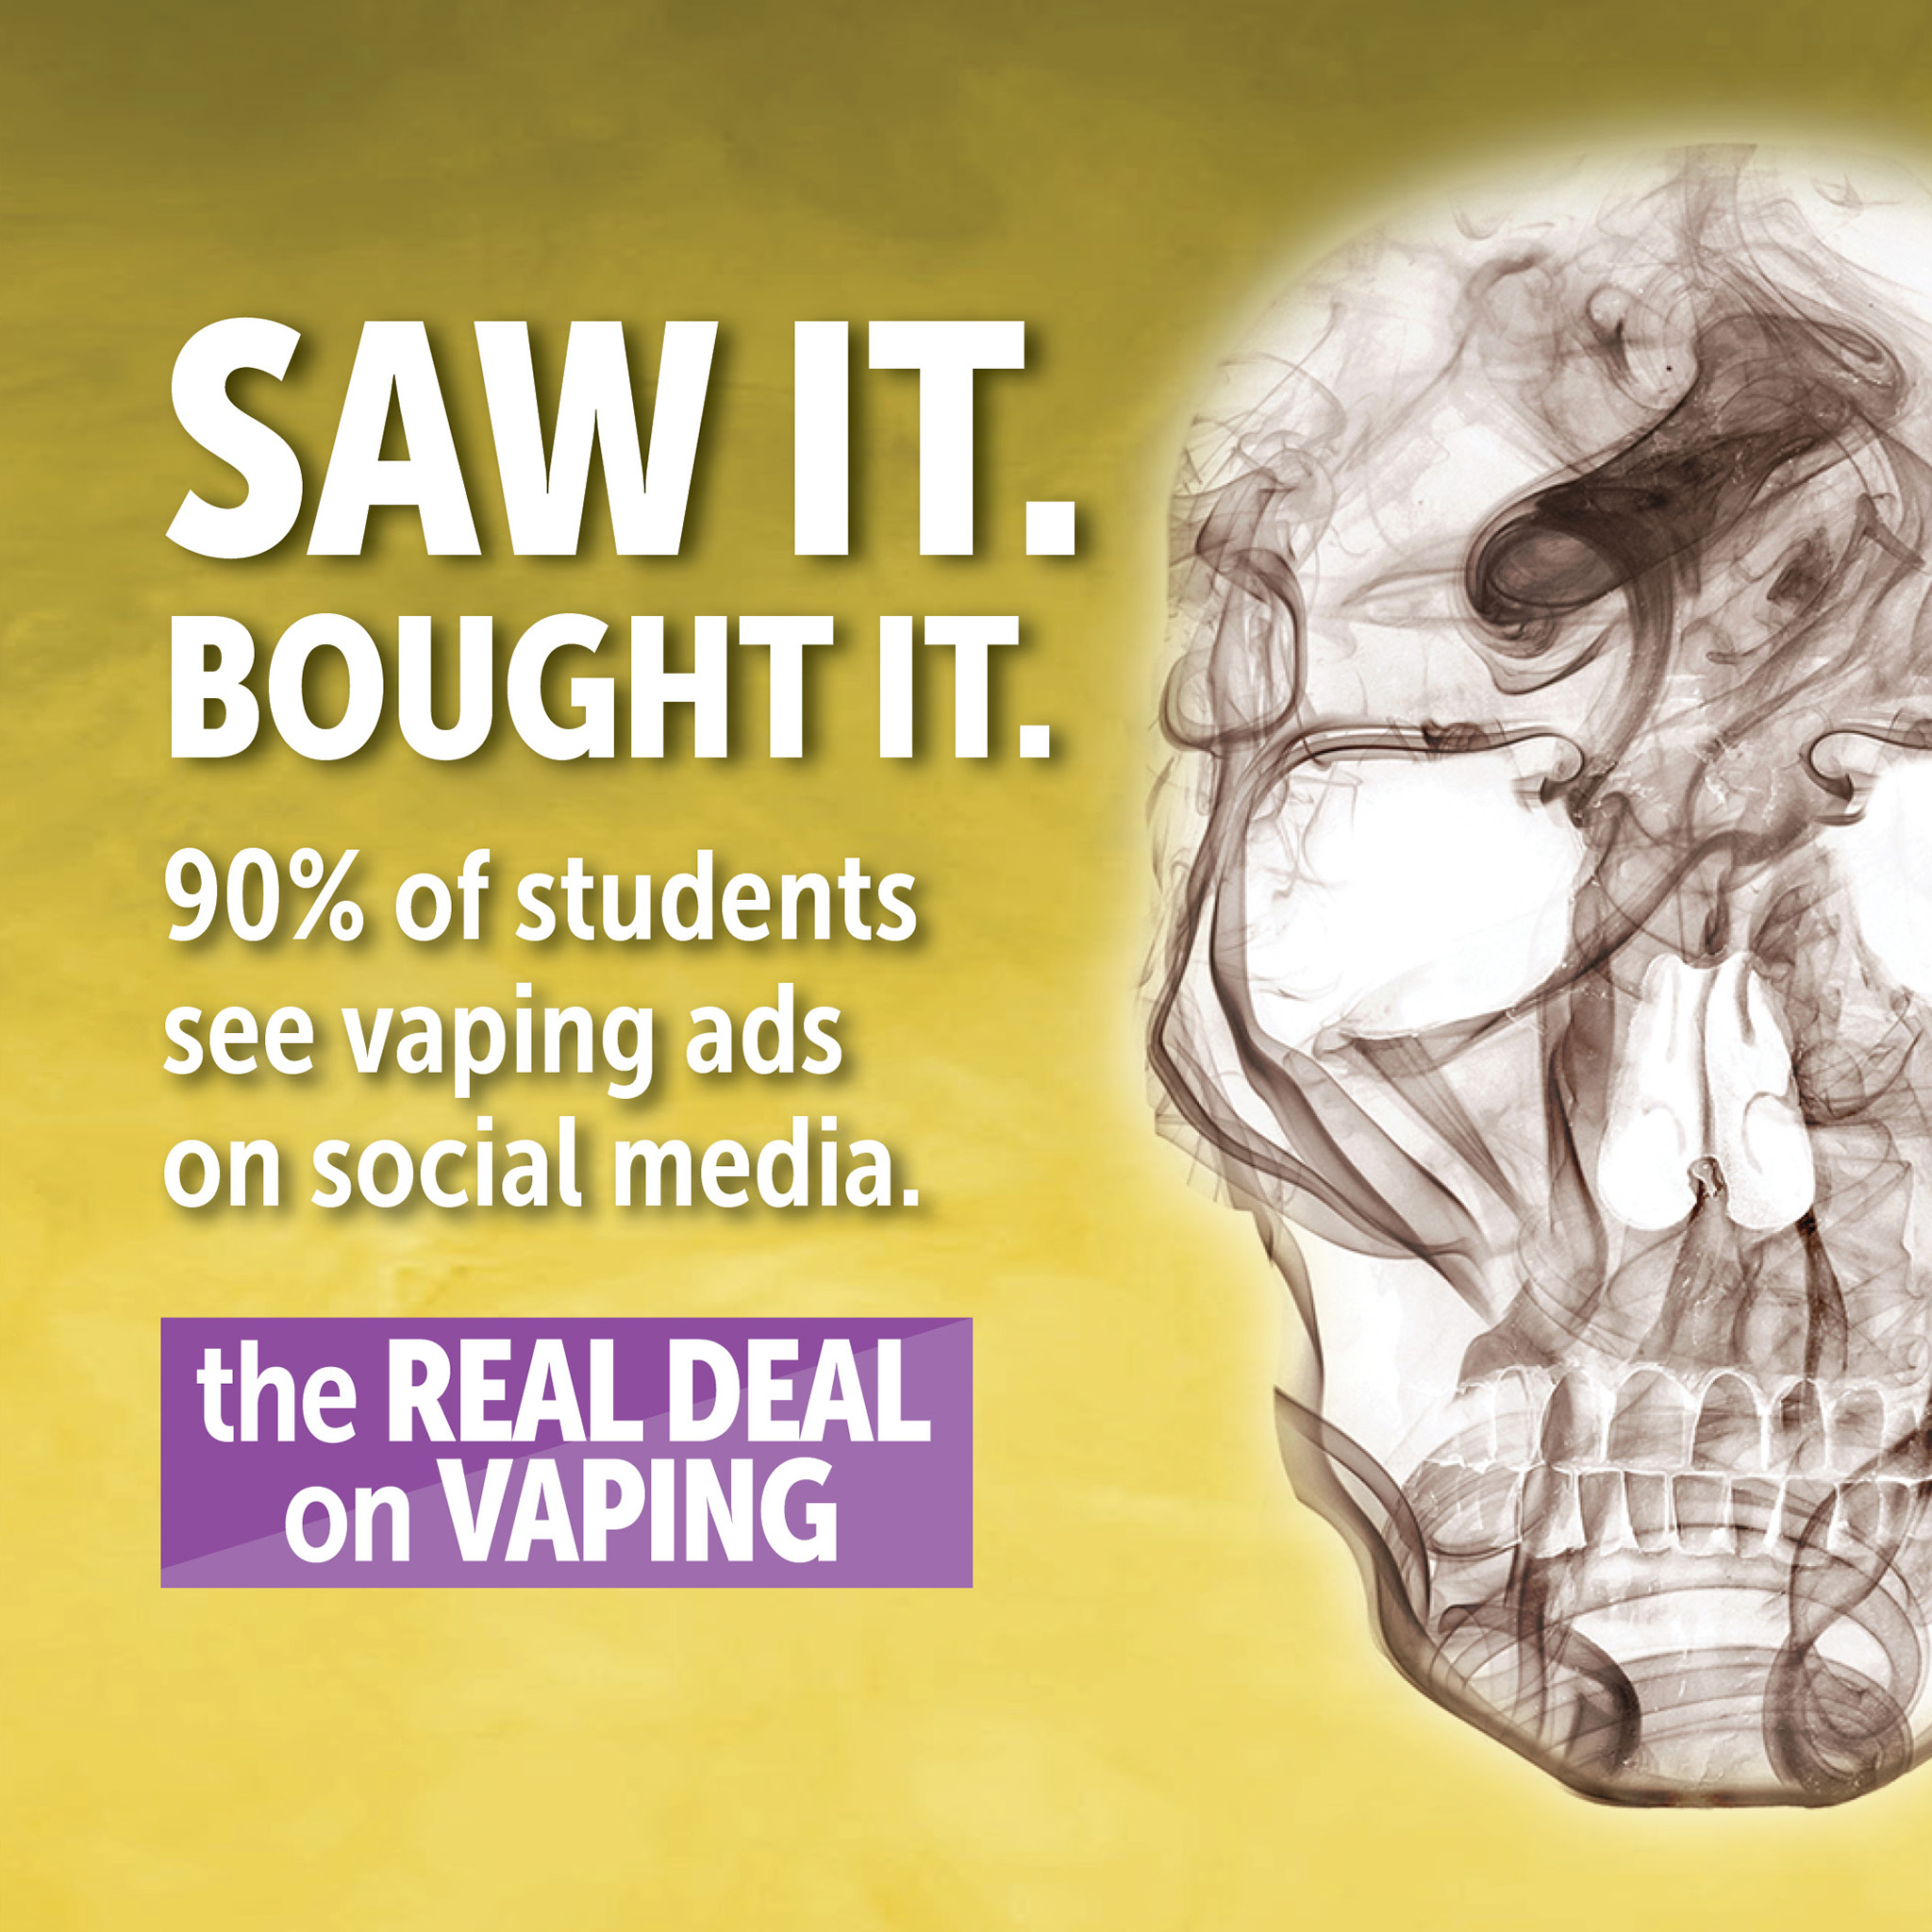 social media and teen vaping rates